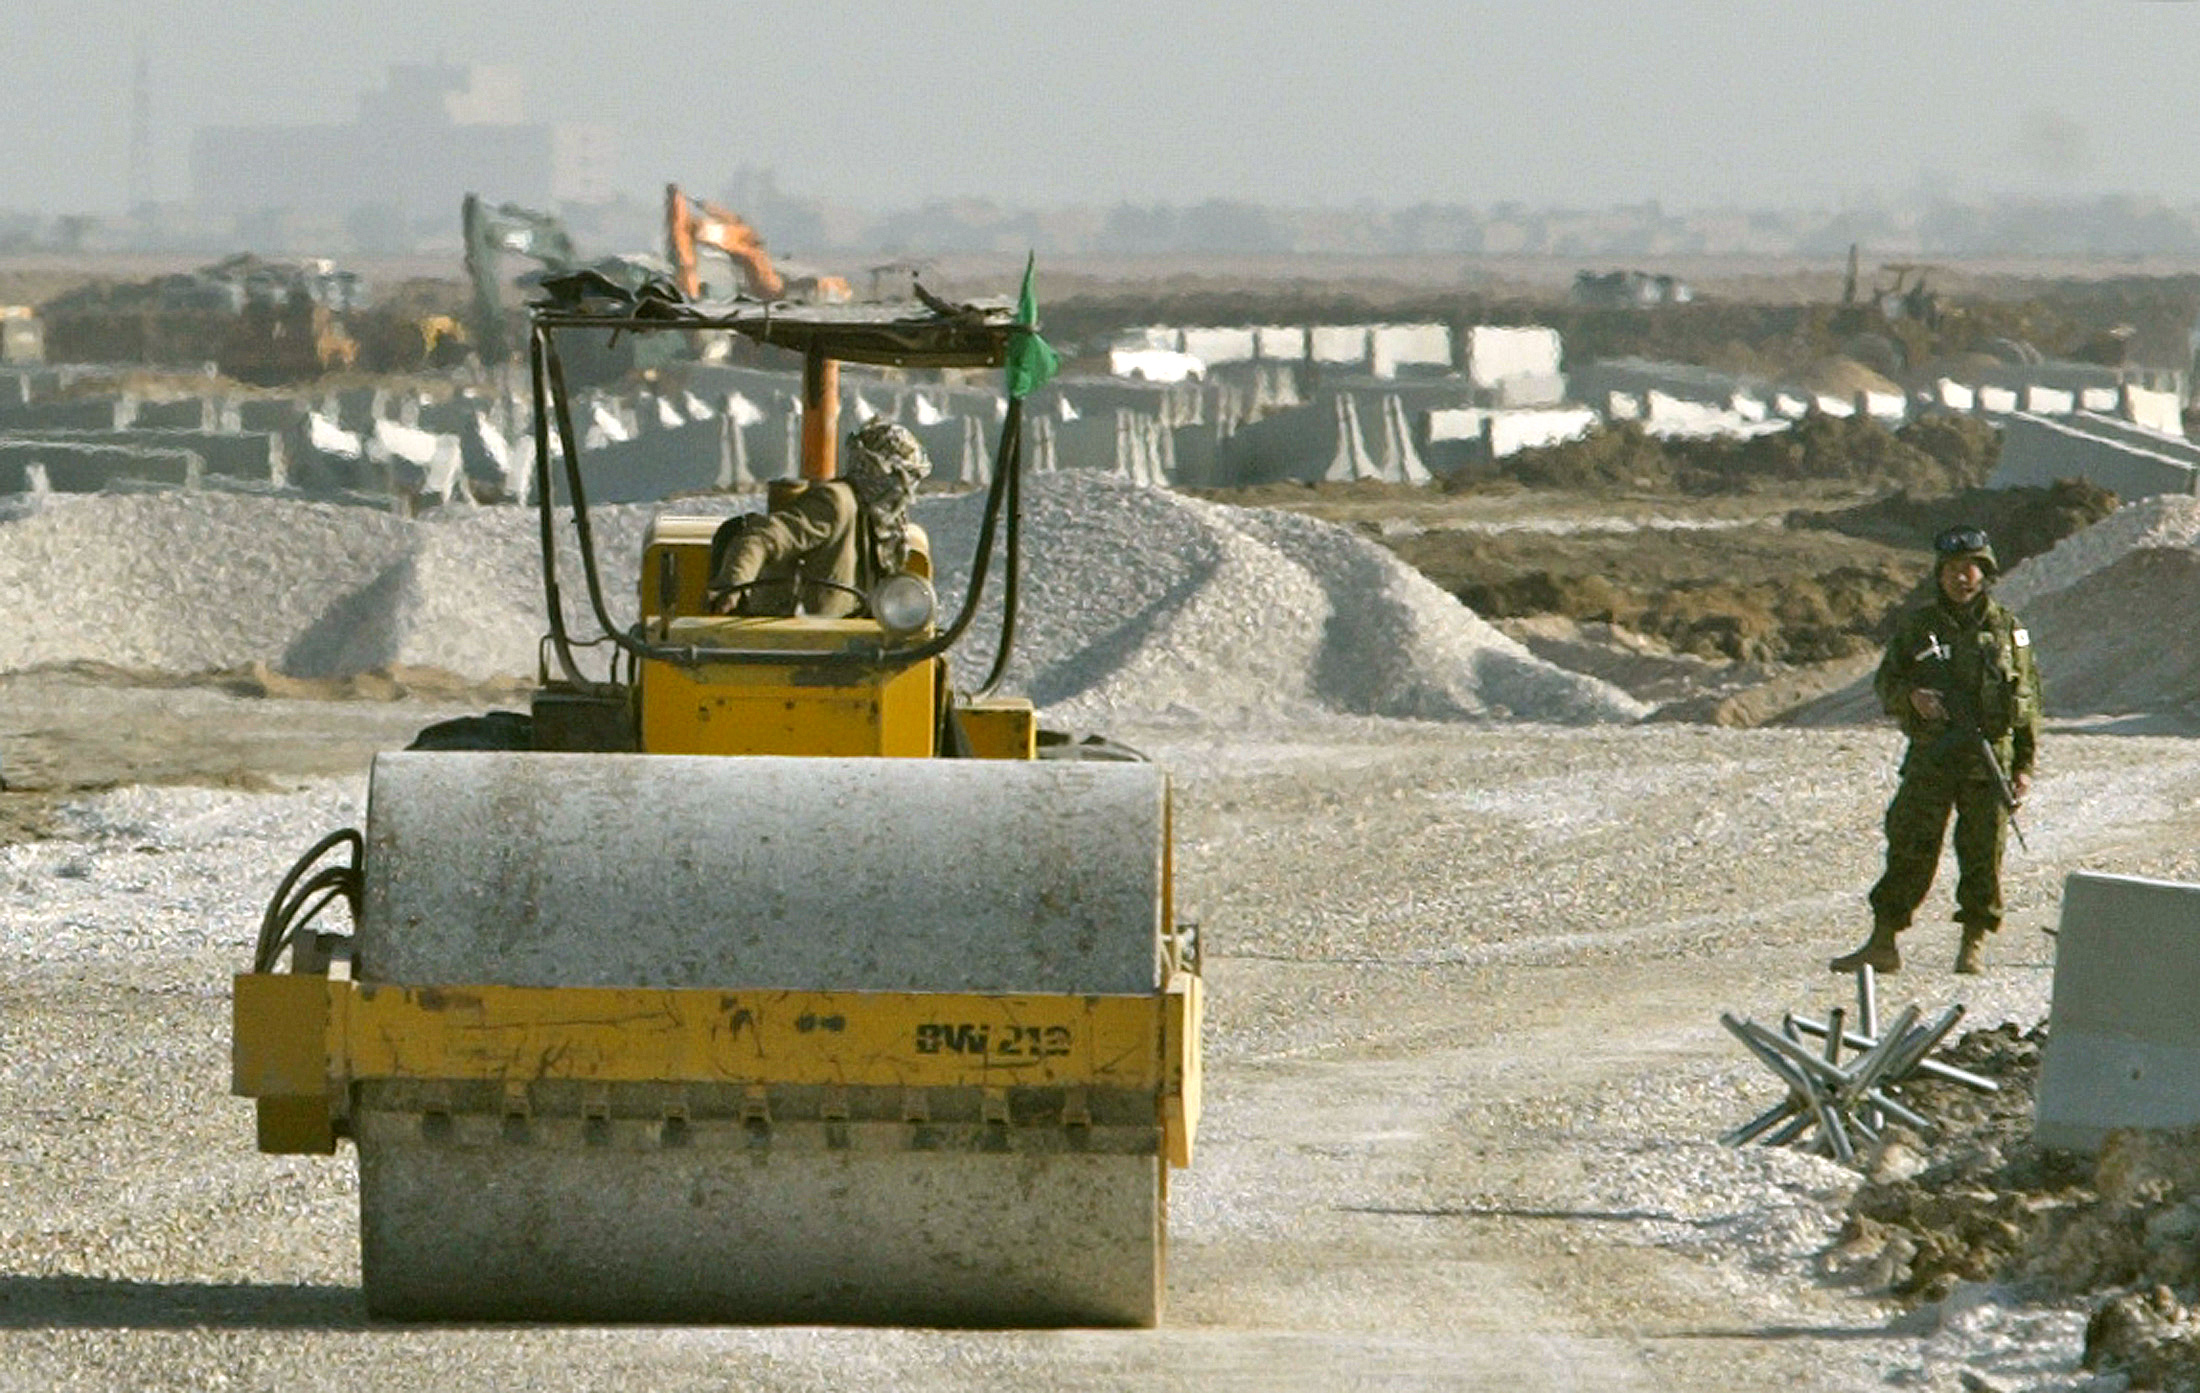 A soldier of the Japanese advanced team watches as an Iraqi construction worker prepares a road for their base outside the town of Samawa, some 300kms south of the Iraqi capital Baghdad February 21, 2004. Japan kept security tight across the country on Saturday as its largest contingent of troops to date prepared to leave on a controversial mission to Iraq. REUTERS/Peter Andrews  PA - RP4DRIASPQAA